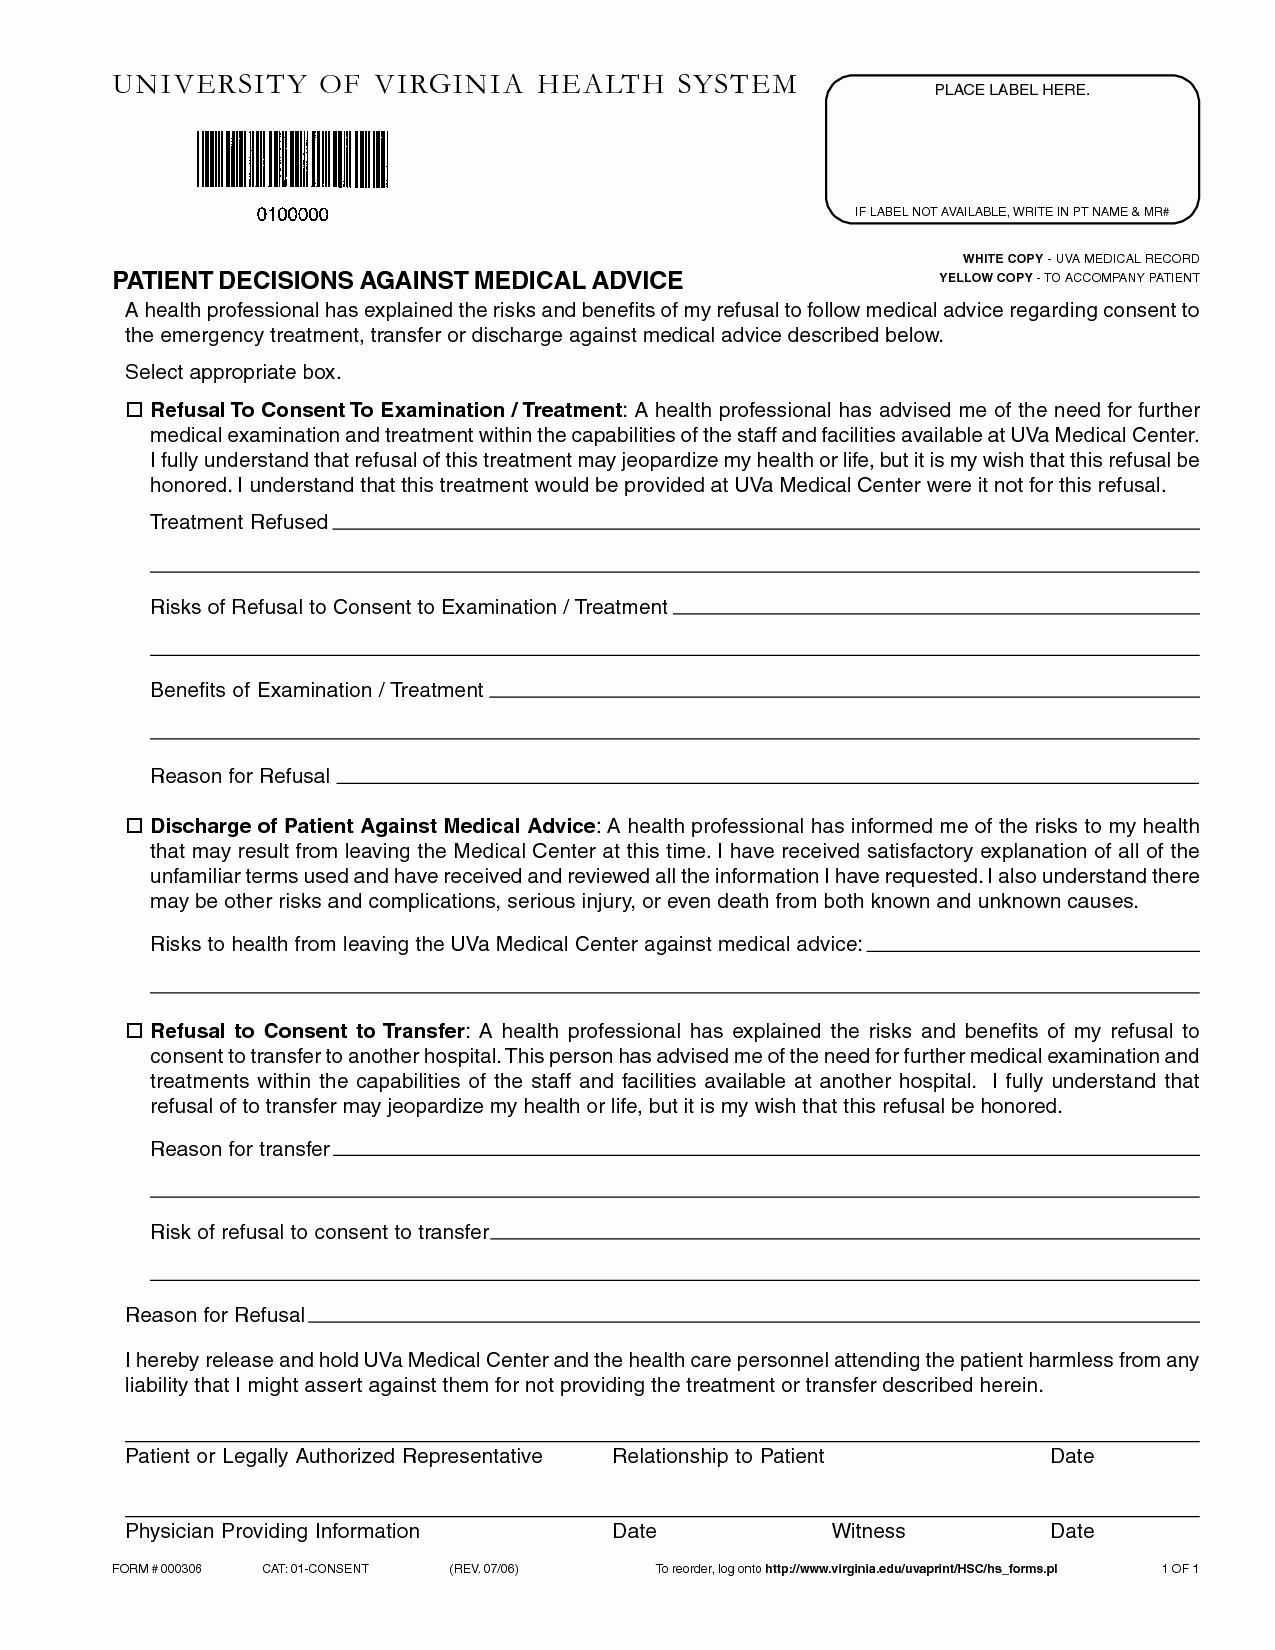 Hospital Discharge form Template Awesome Blank Printable Hospital Discharge forms